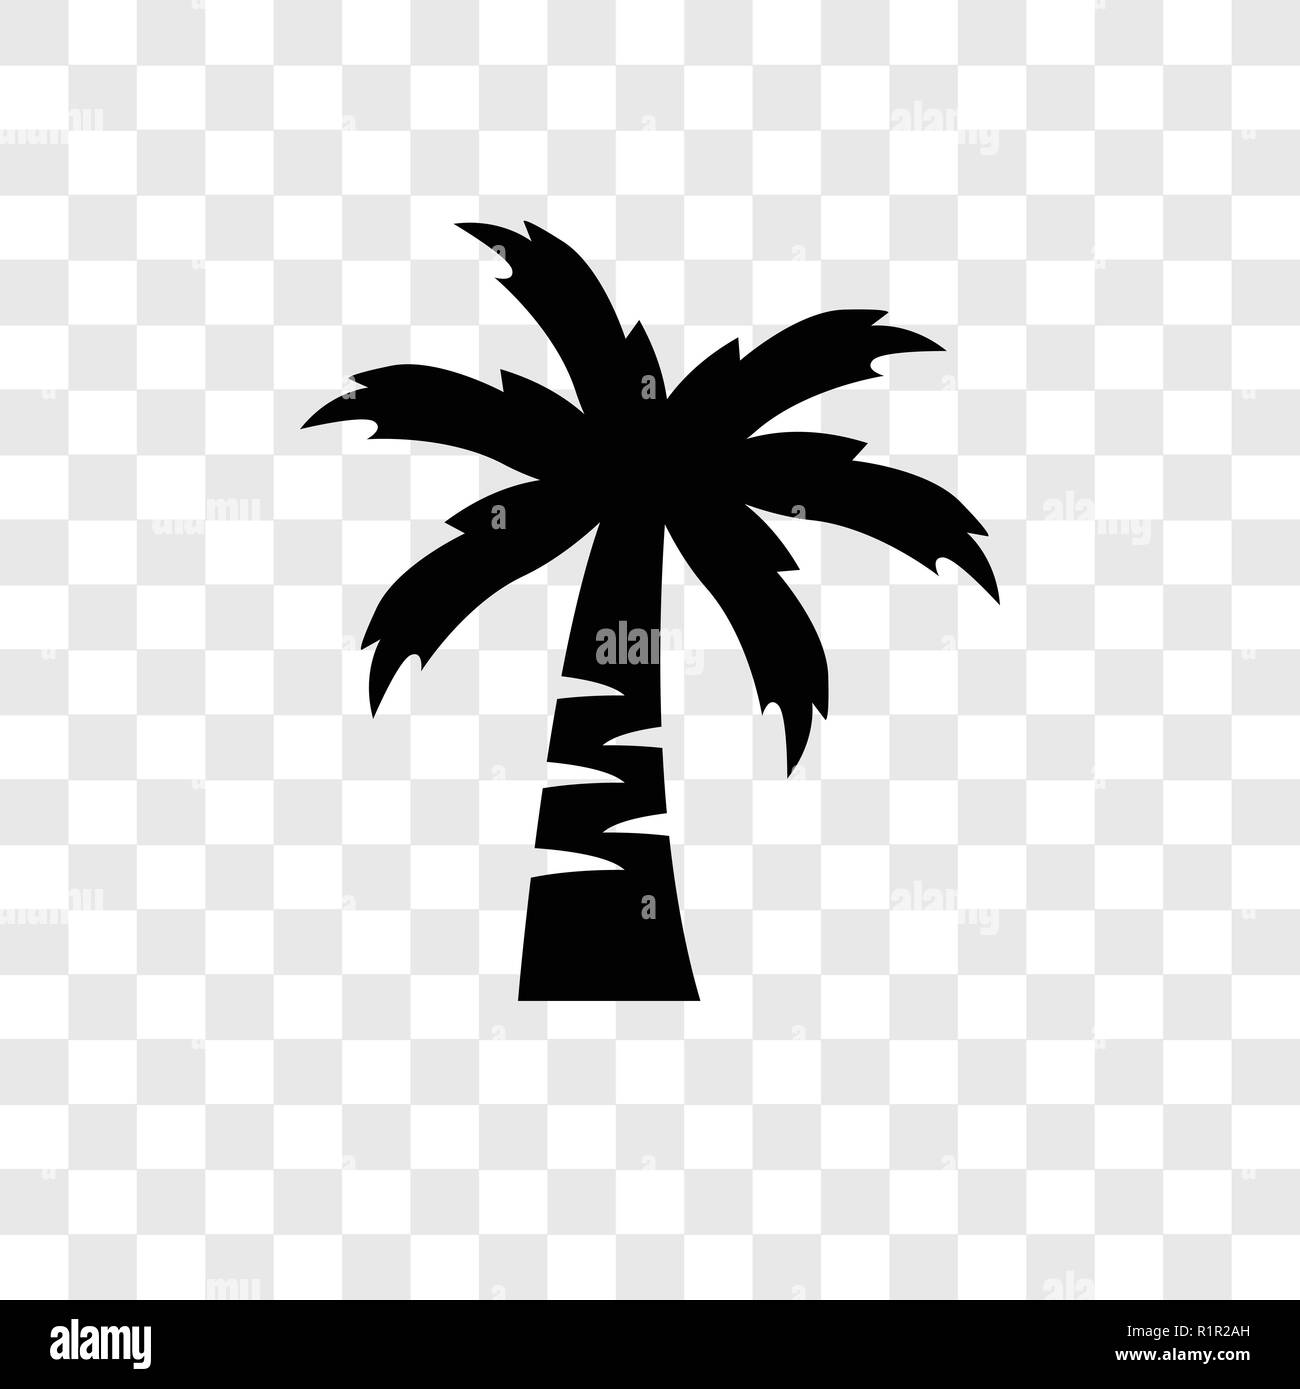 hight resolution of coconut tree vector icon isolated on transparent background coconut tree transparency logo concept stock